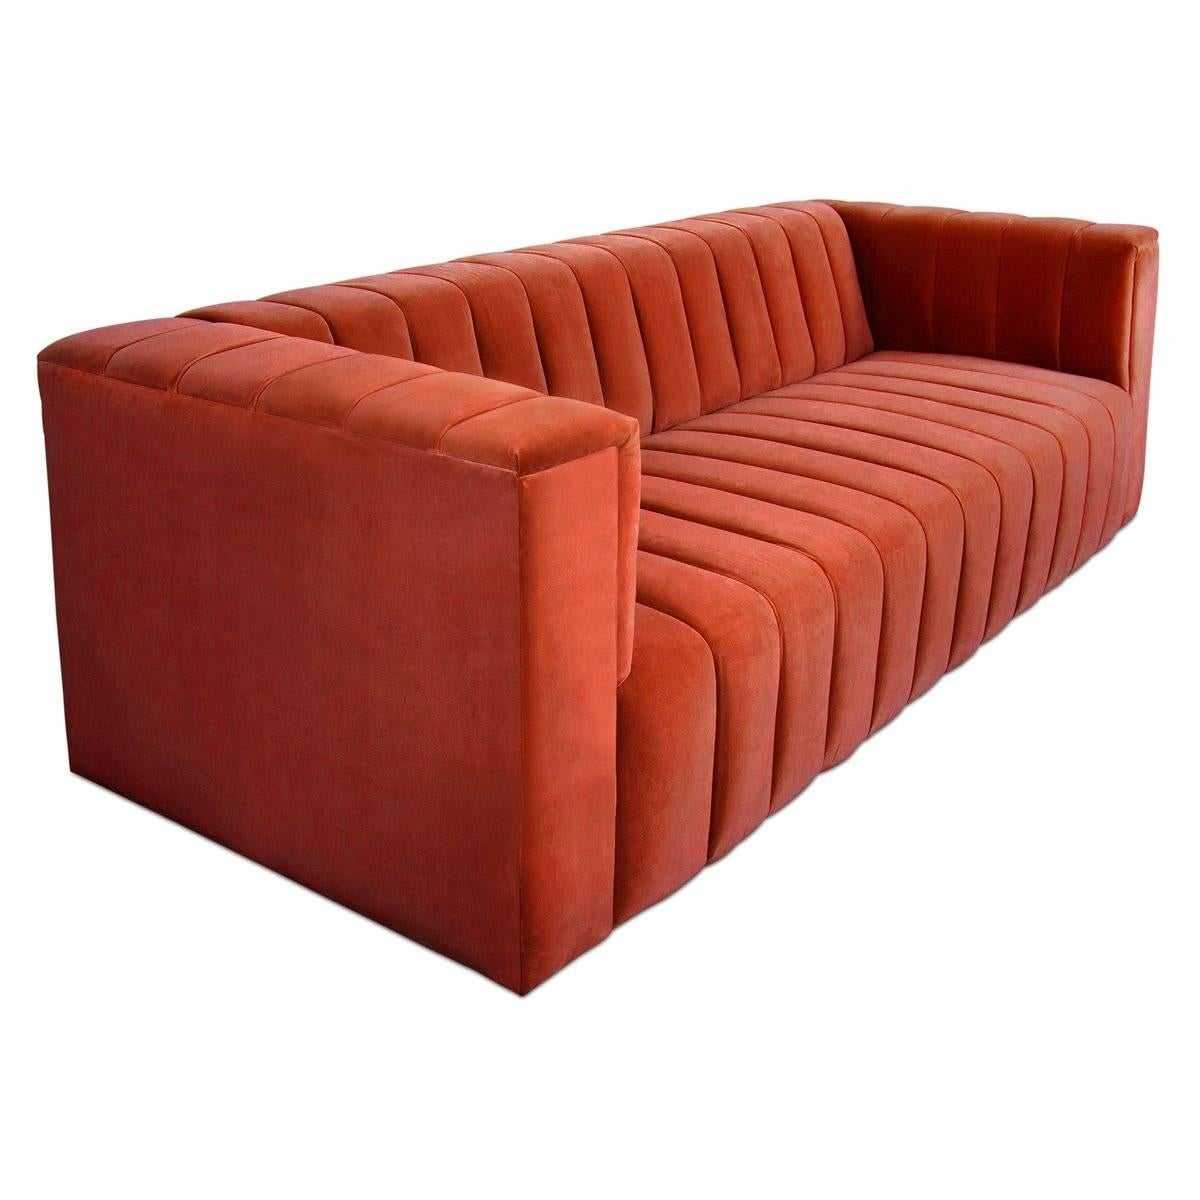 Midcentury Style Merlot Velvet Fat Channel Tufted Chunky Thick Sofa For  Sale At 1stdibs